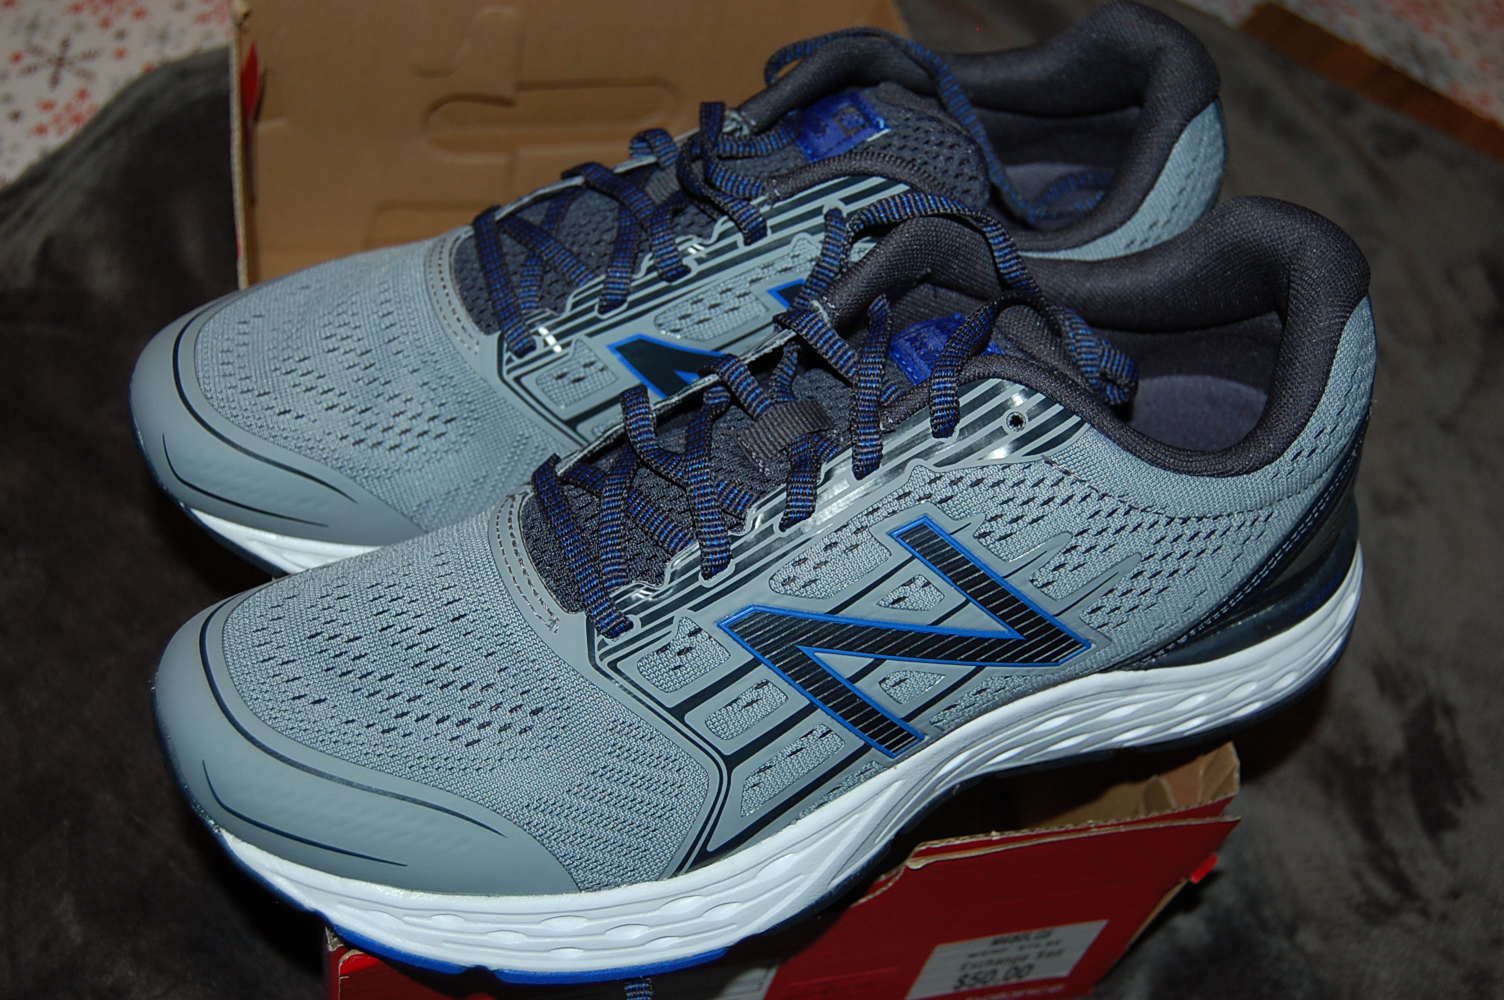 New Balance Men's Running shoes 10.5 Medium NB M680LG5 New with Tags